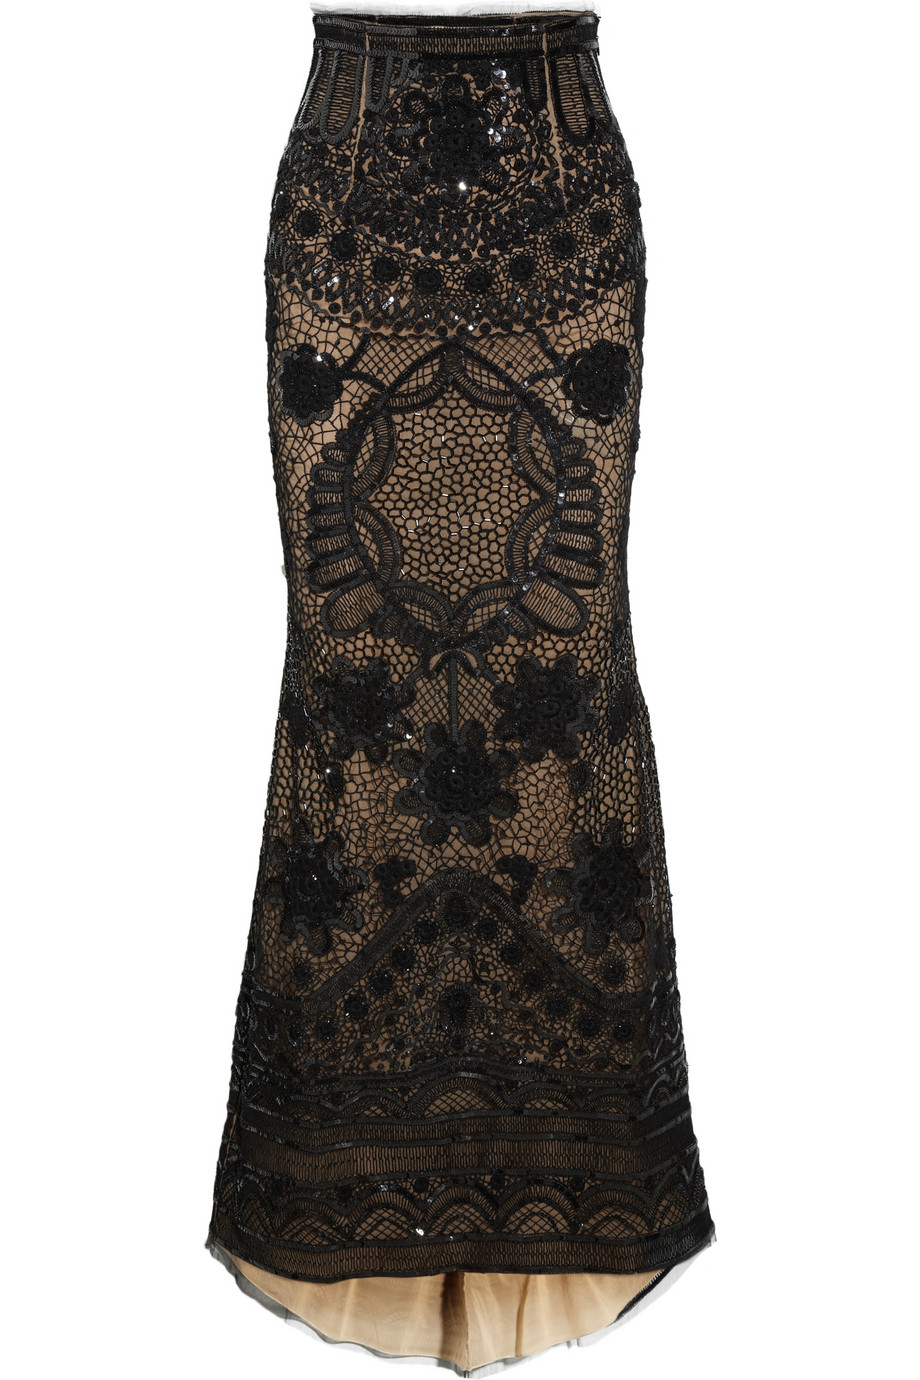 emilio pucci sequined tulle maxi skirt in black lyst